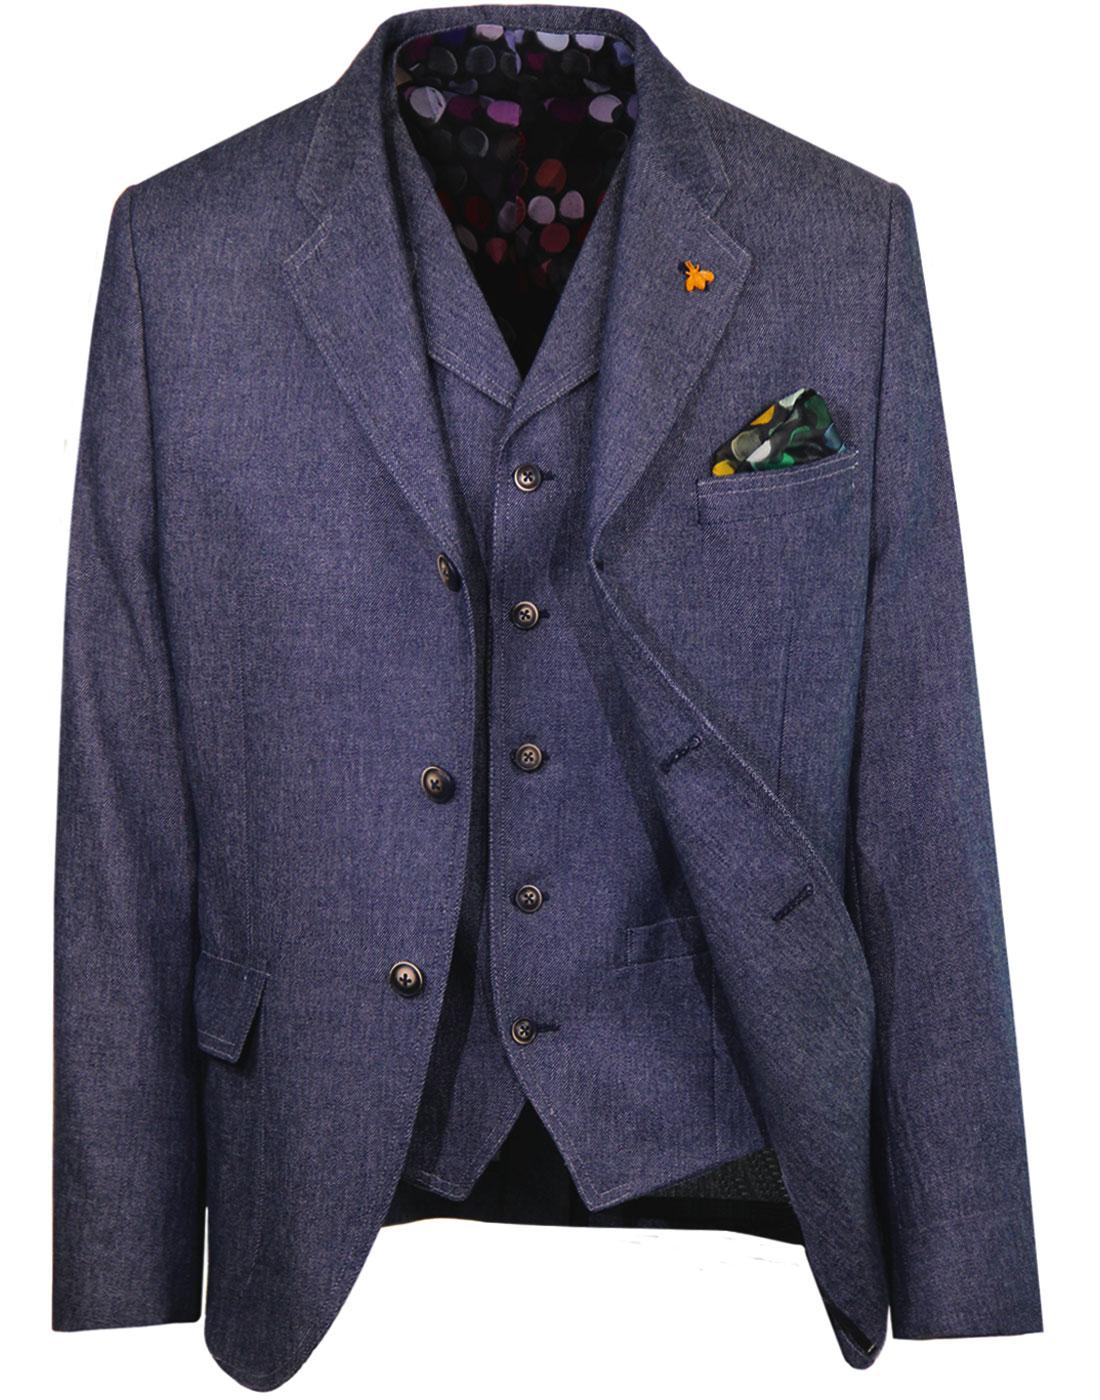 Grouse GIBSON LONDON Matching Blazer & Waistcoat B